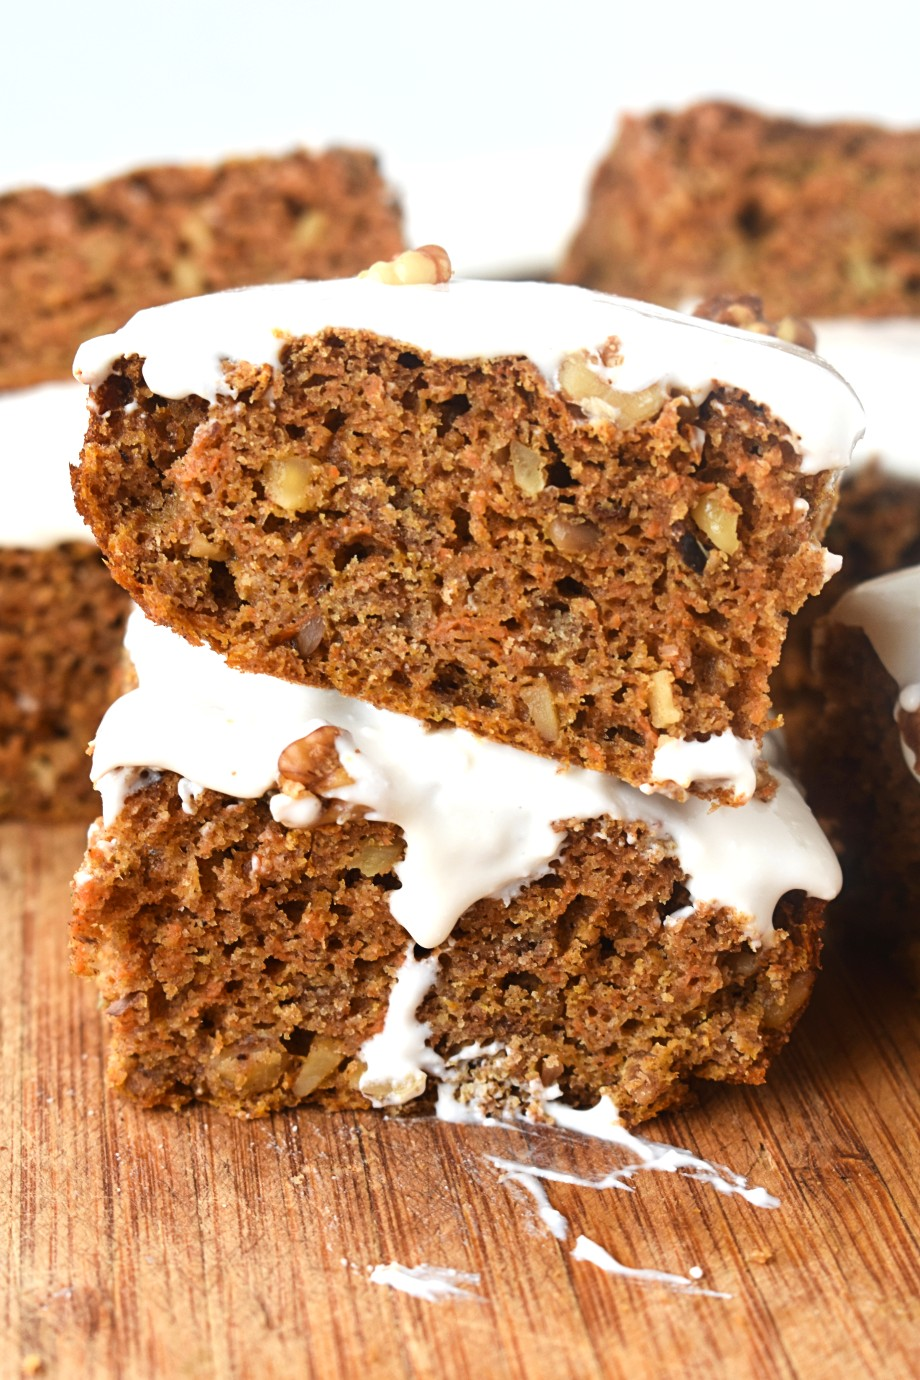 slices of healthy carrot cake